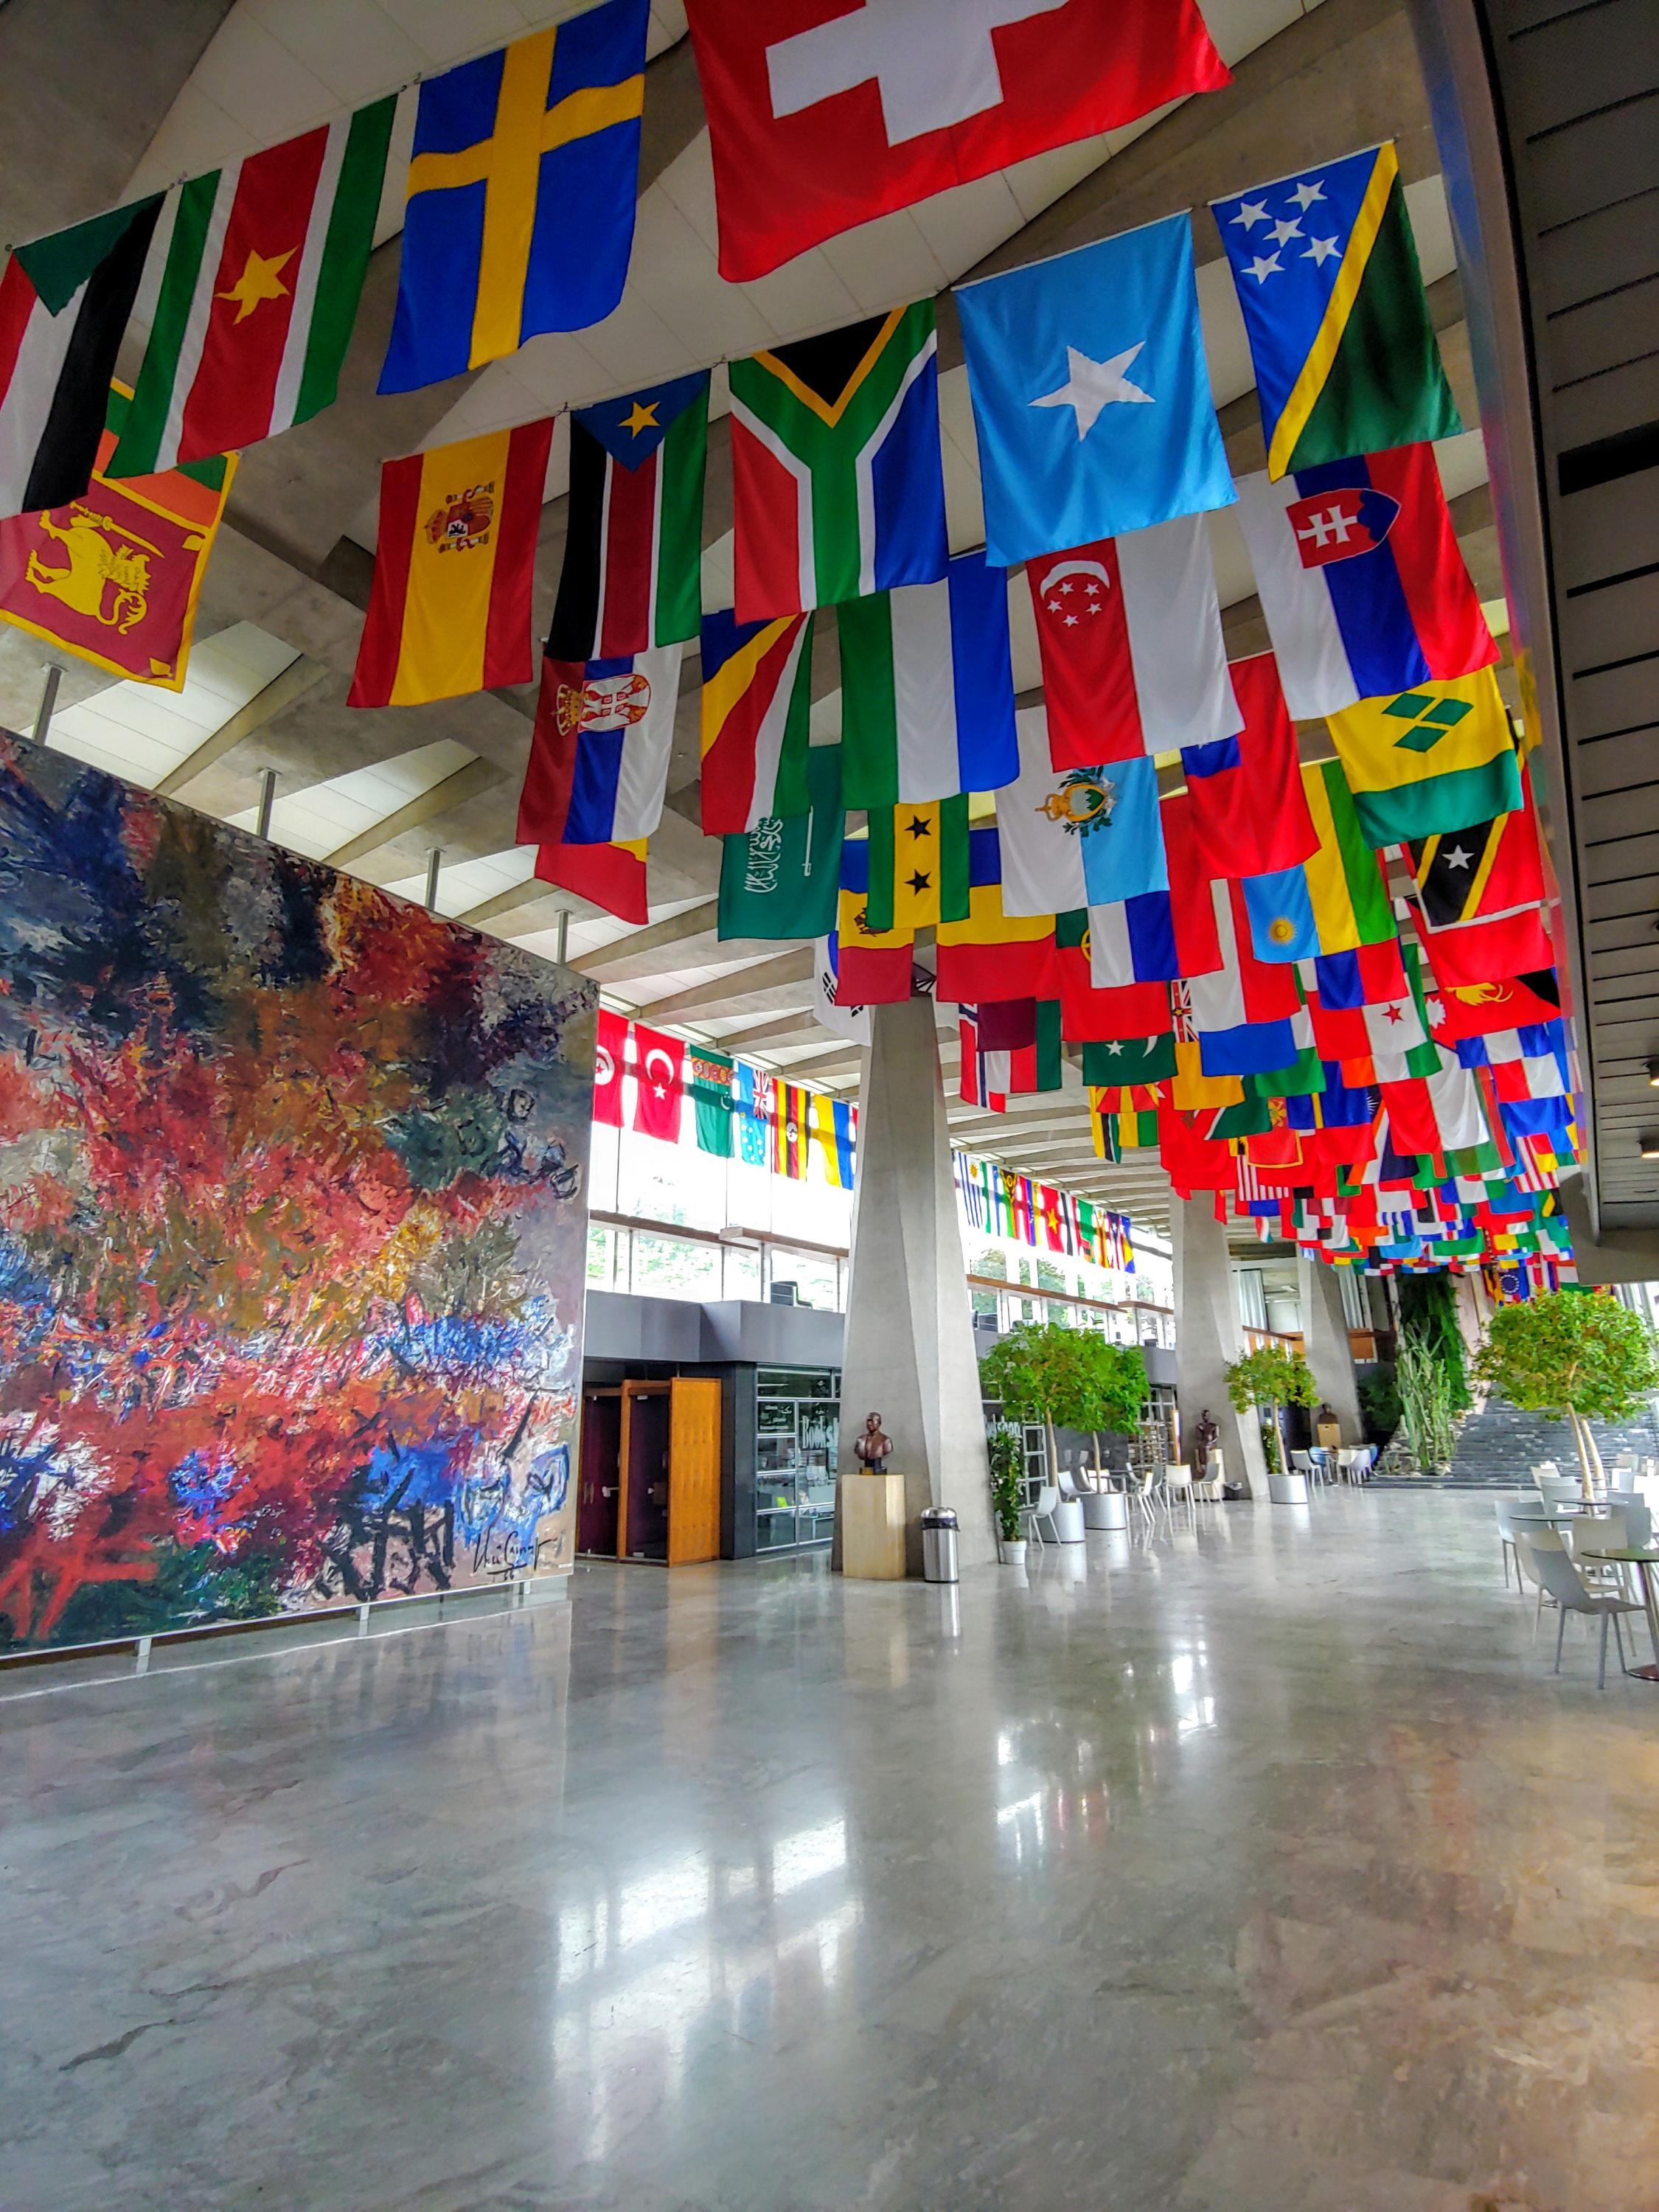 WHO lobby with flags of many countries hanging from ceiling